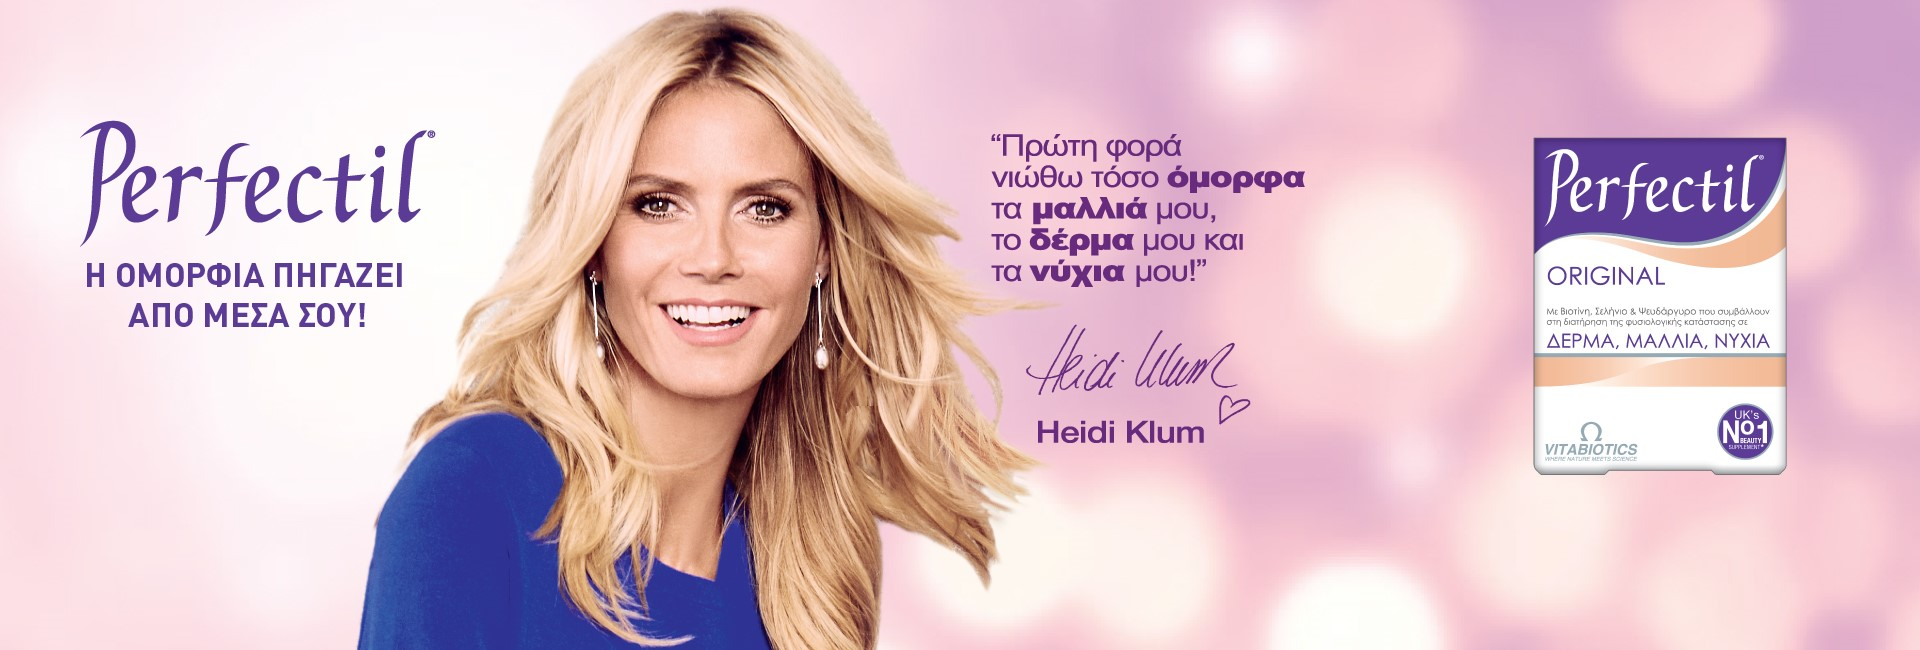 Heidi Klum for Perfectil